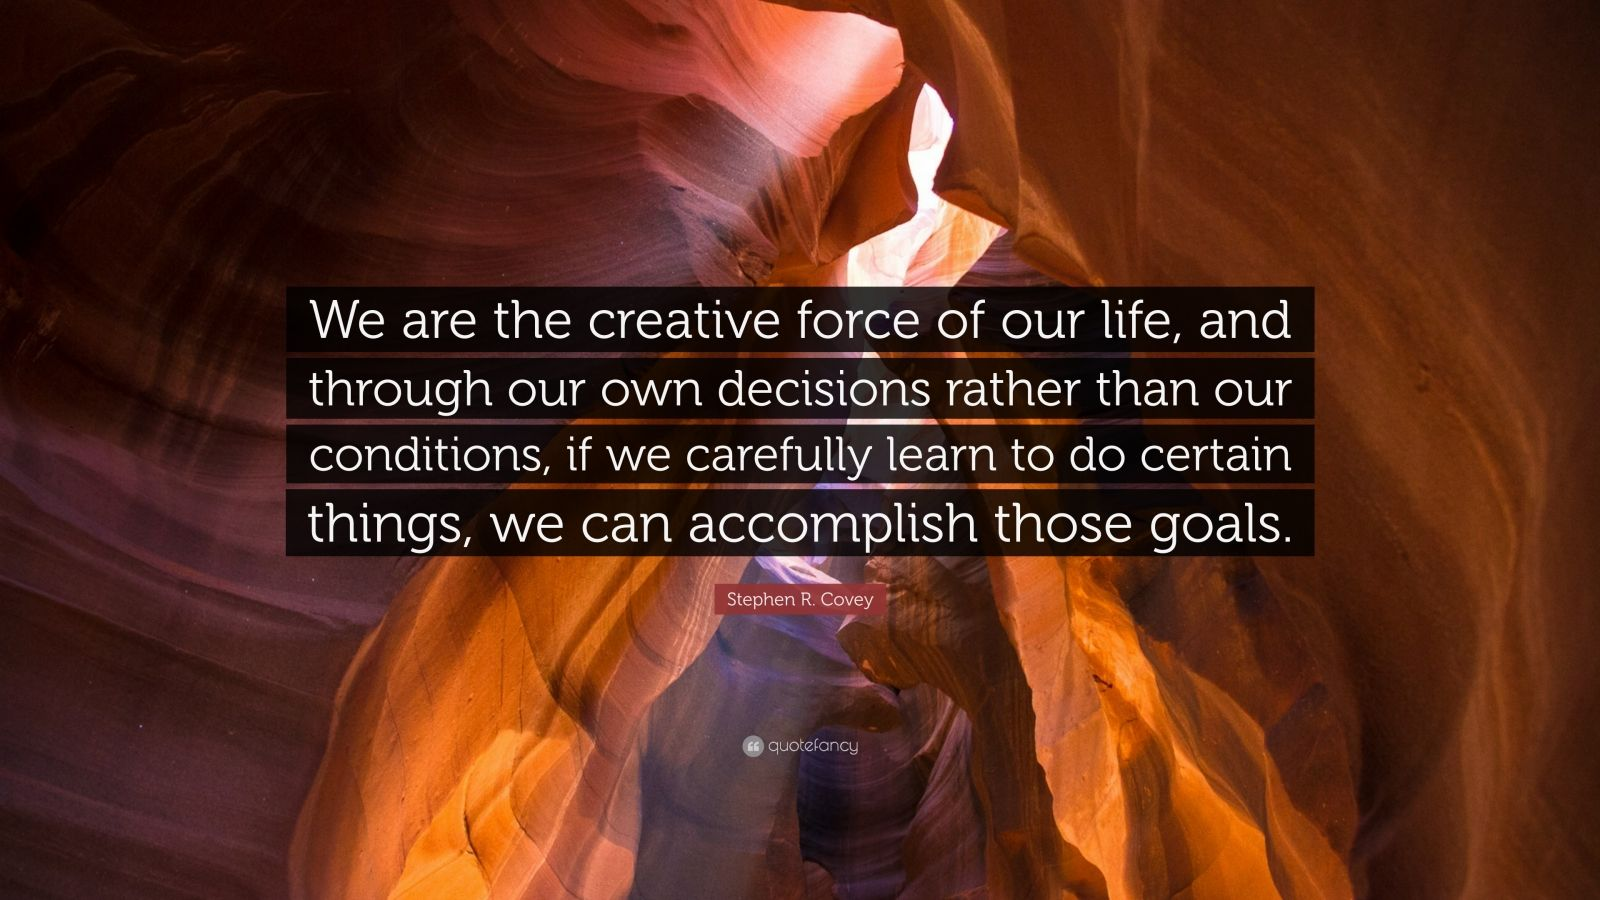 """Stephen R. Covey Quote: """"We are the creative force of our life, and through our own decisions rather than our conditions, if we carefully learn to do certain things, we can accomplish those goals."""""""